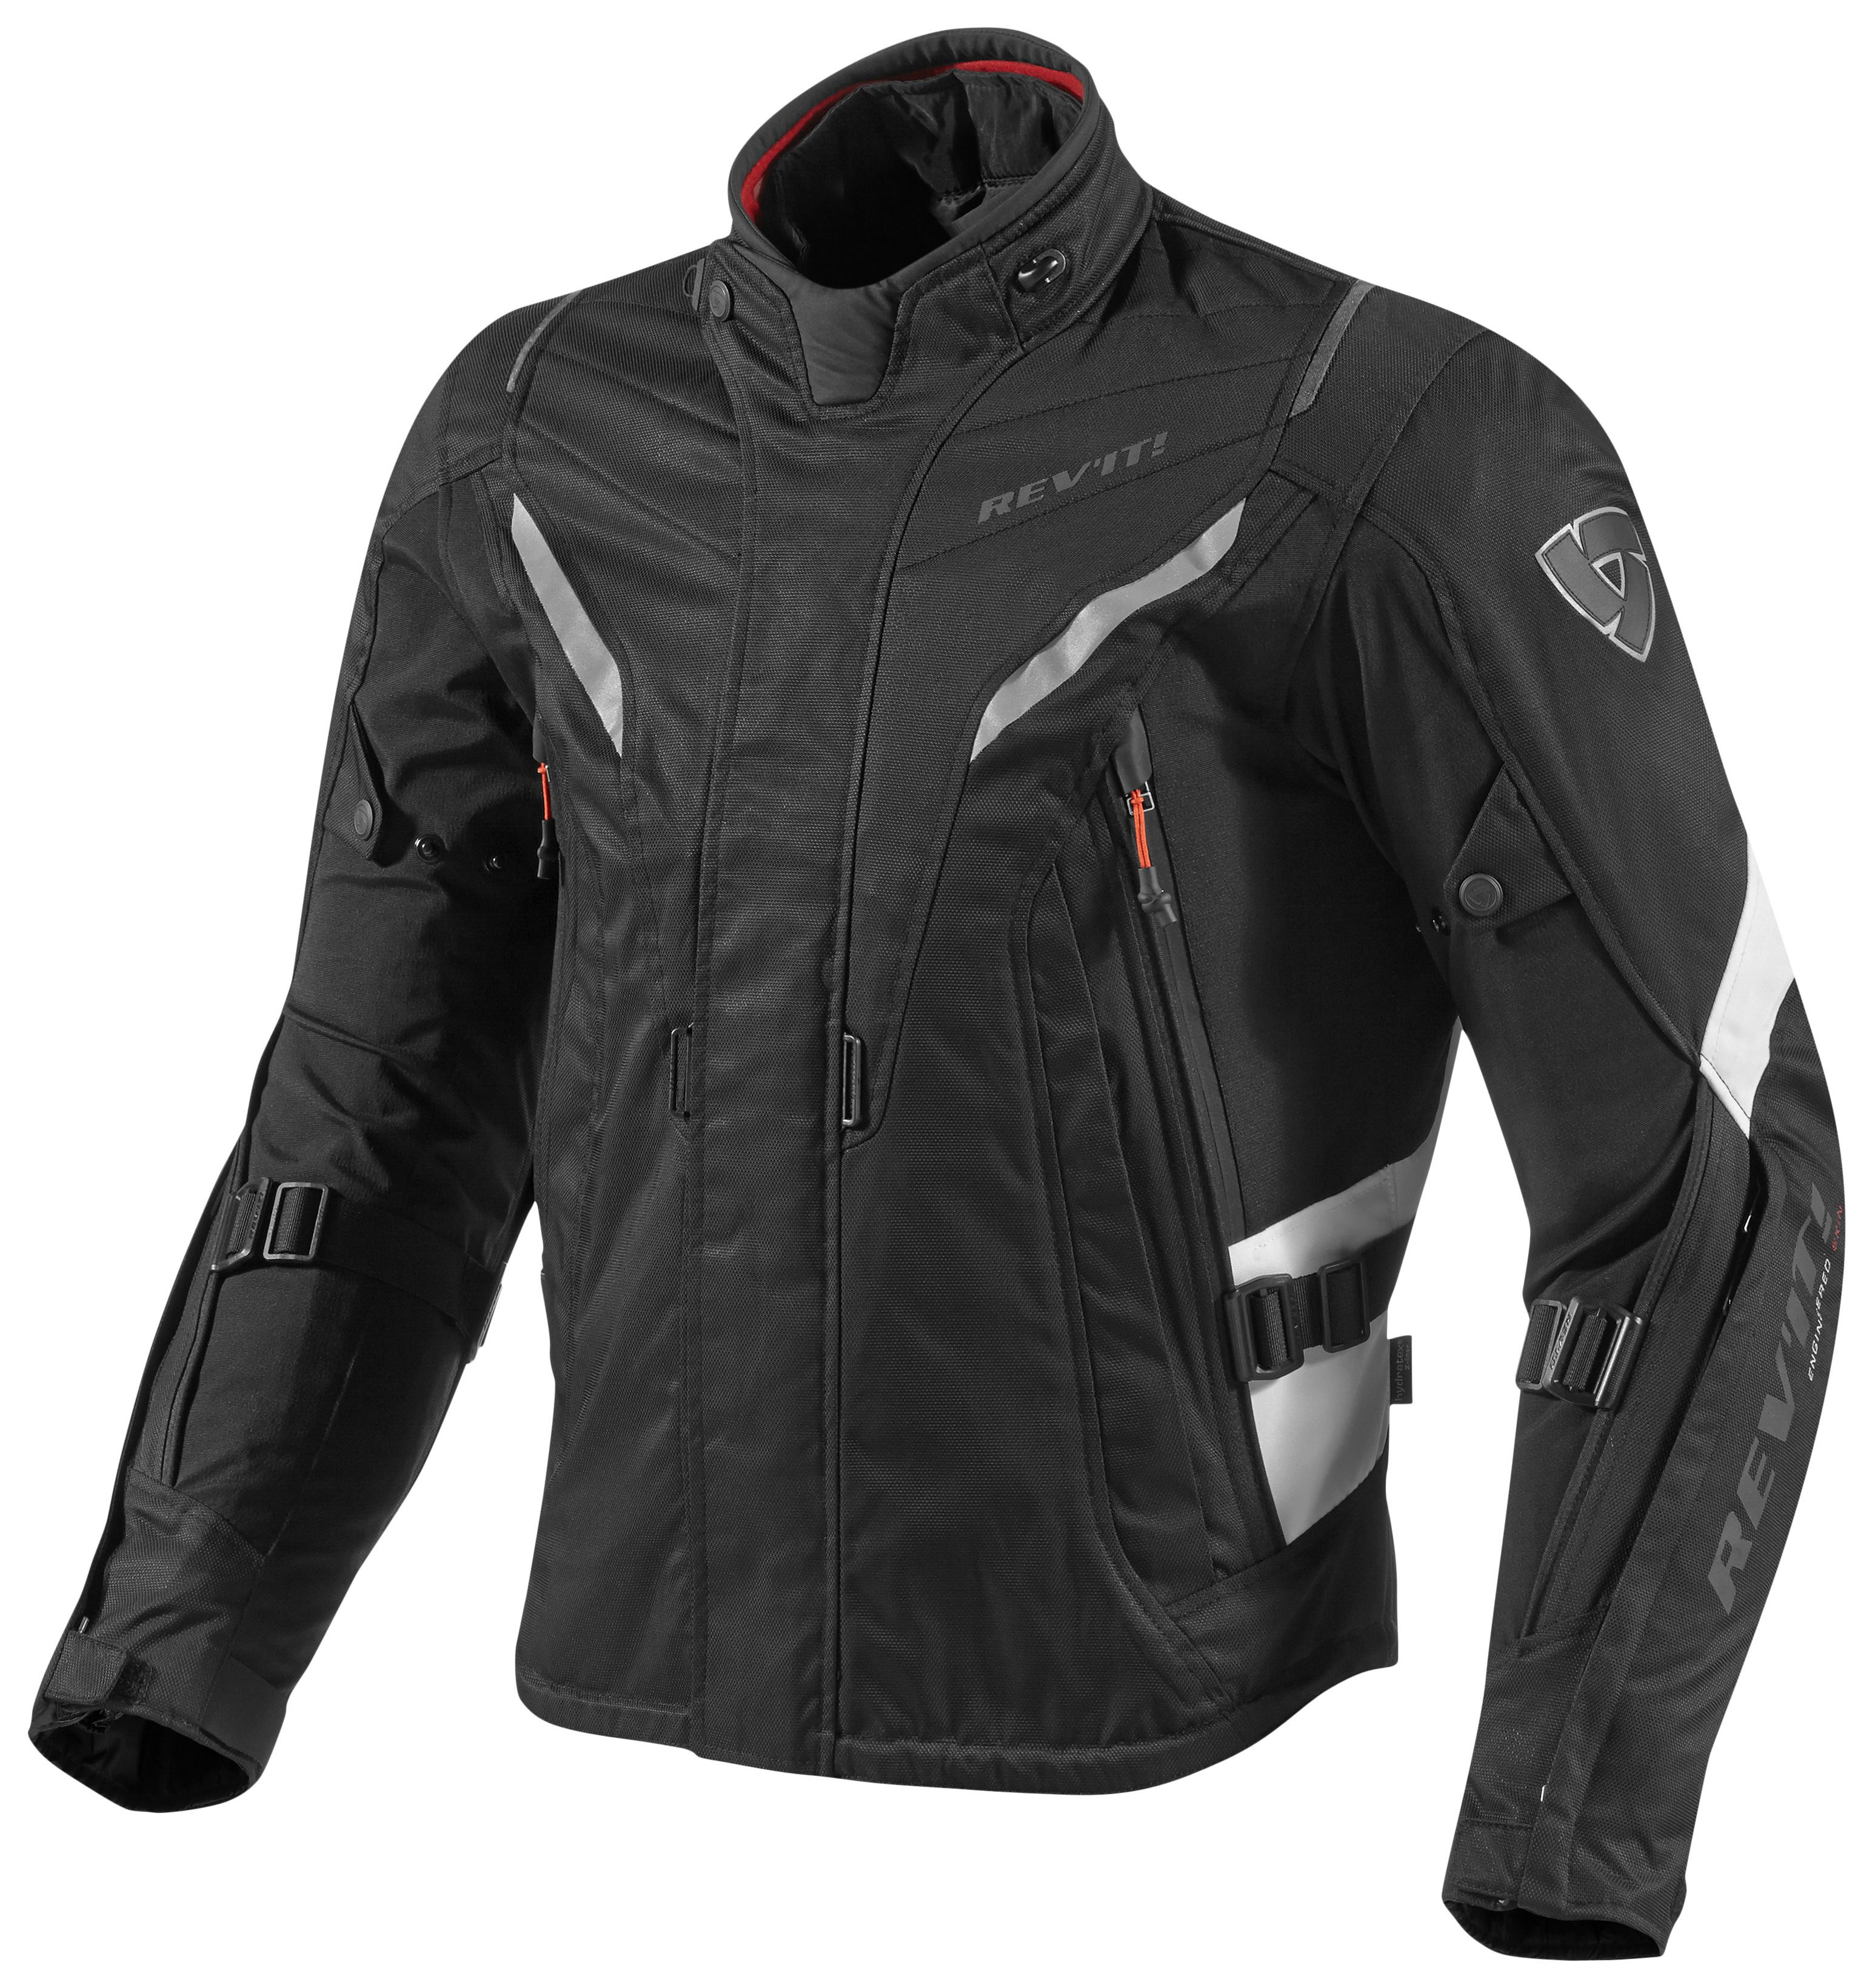 Vapor Jacket | 35% ($144.99) Off! - RevZilla